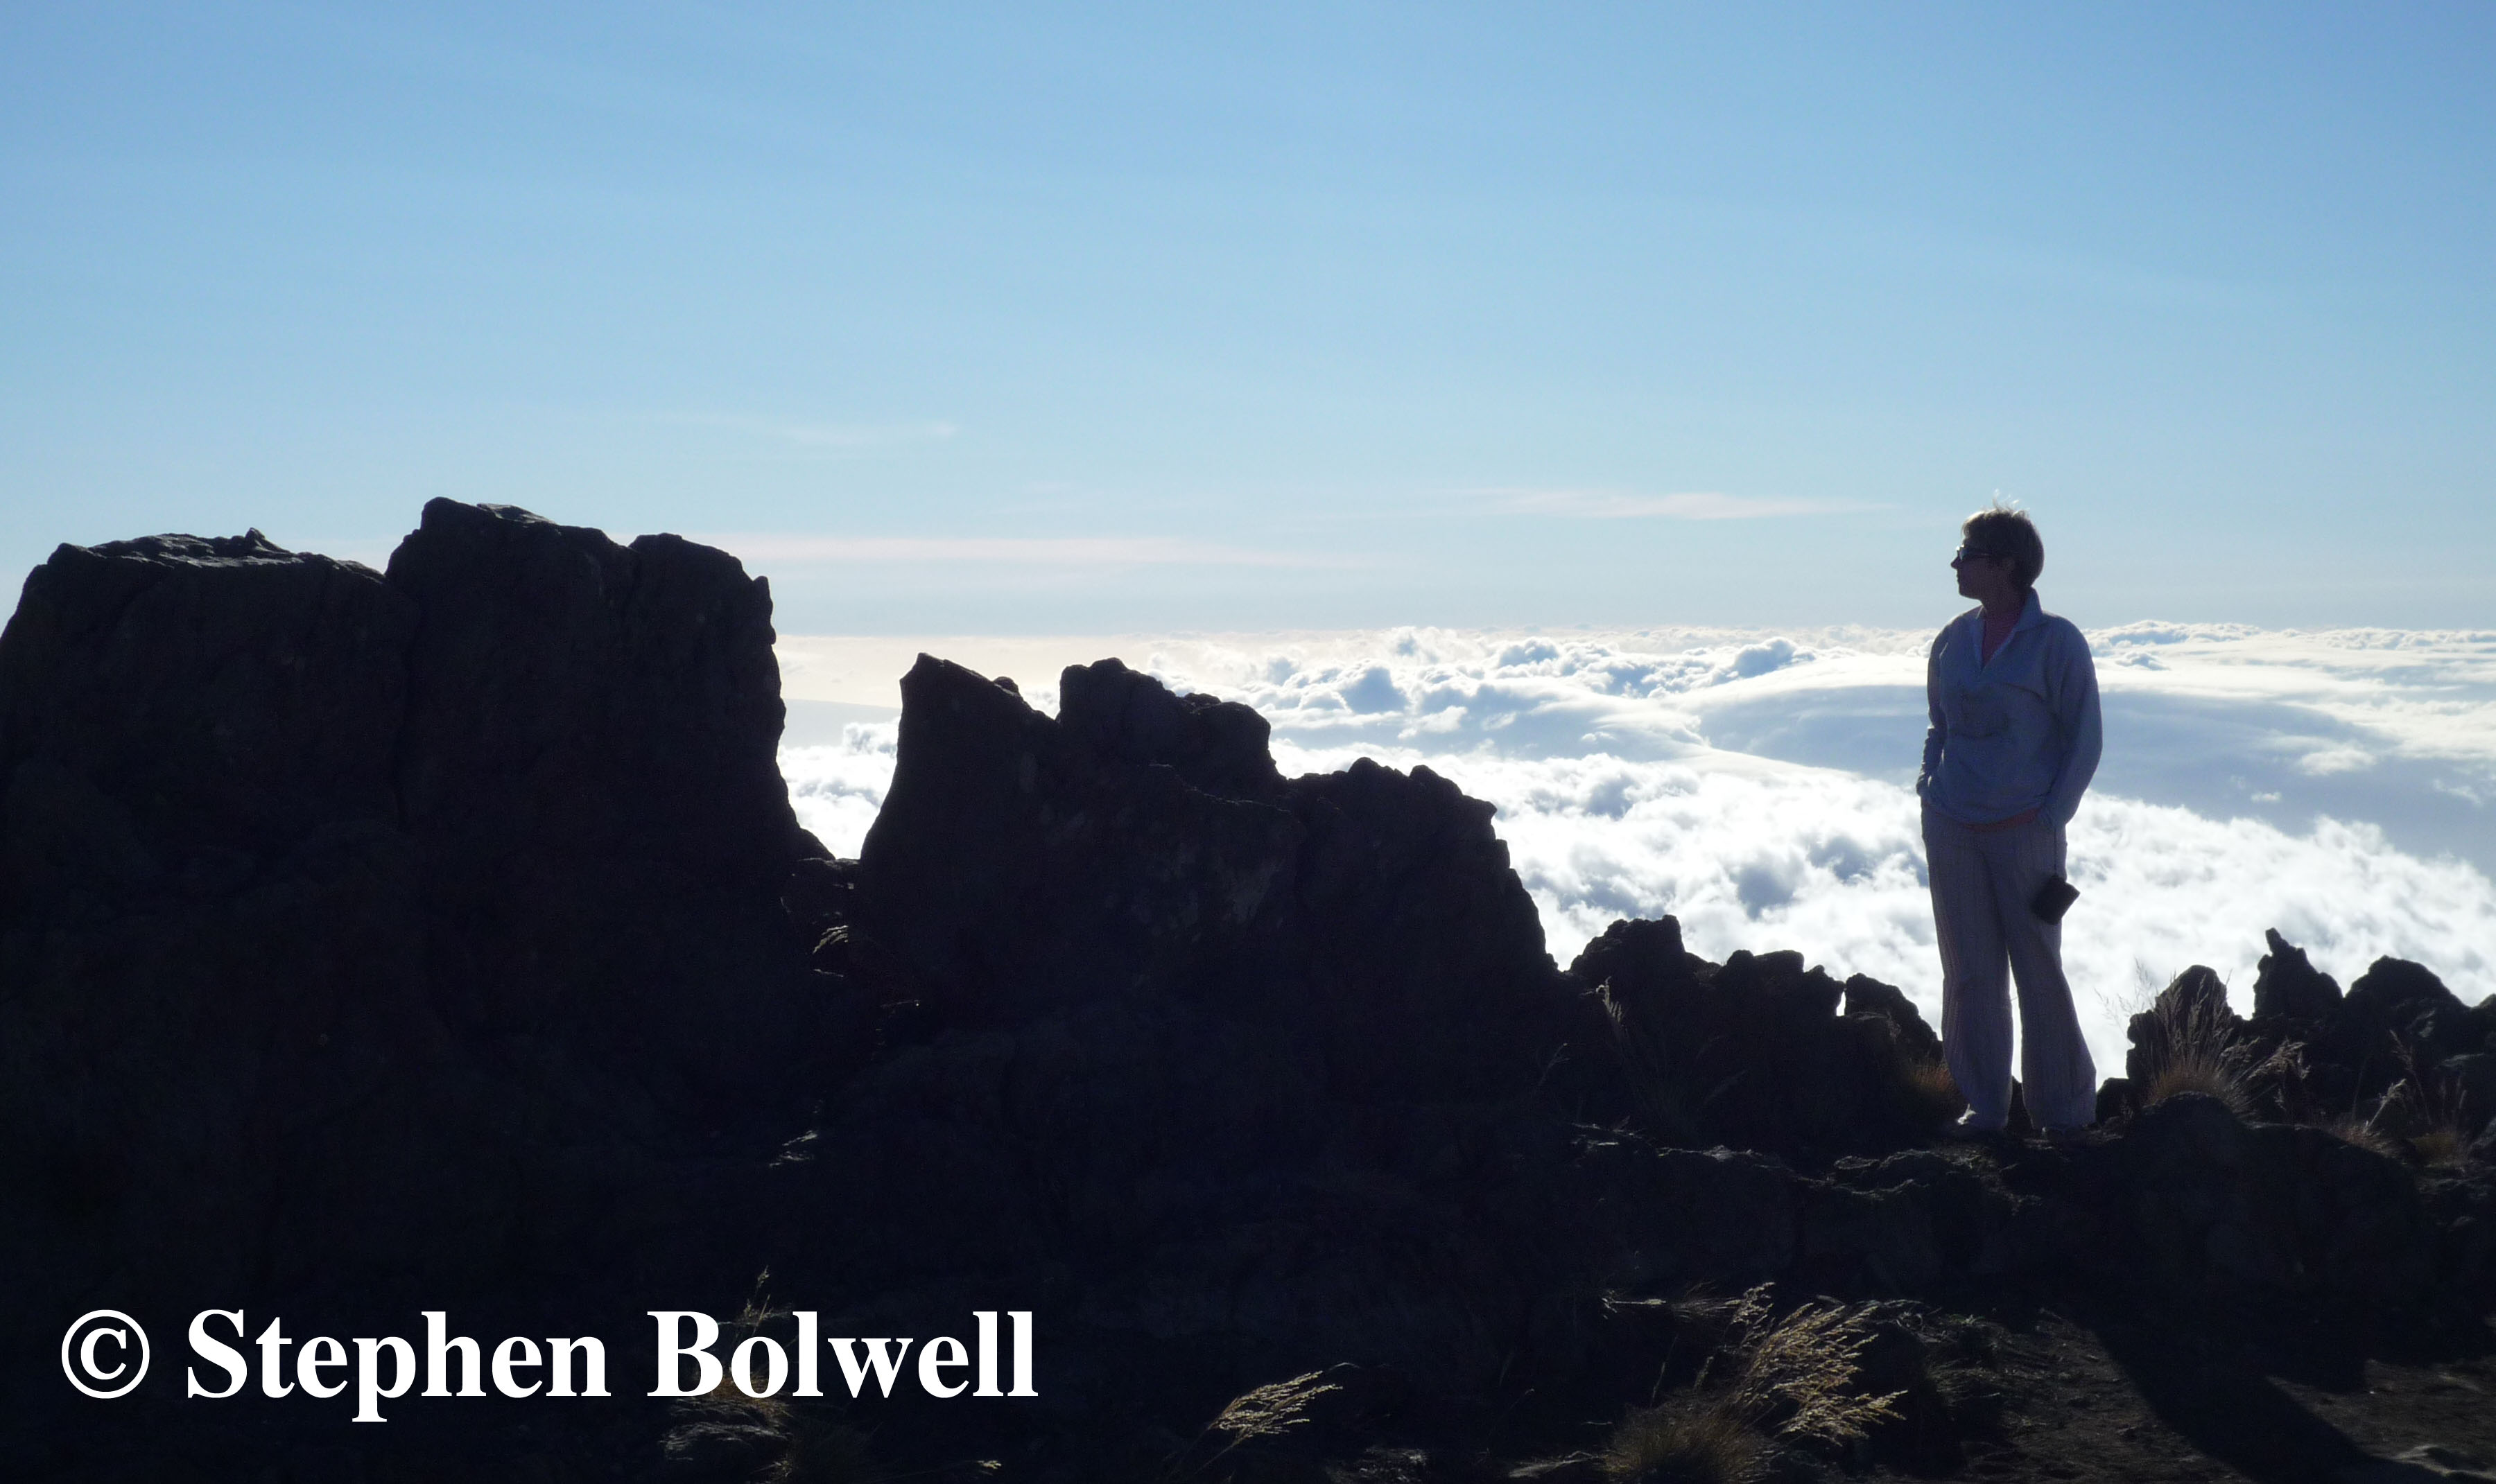 My wife Jen on Haleakala in 2010. Up above the clouds so high.